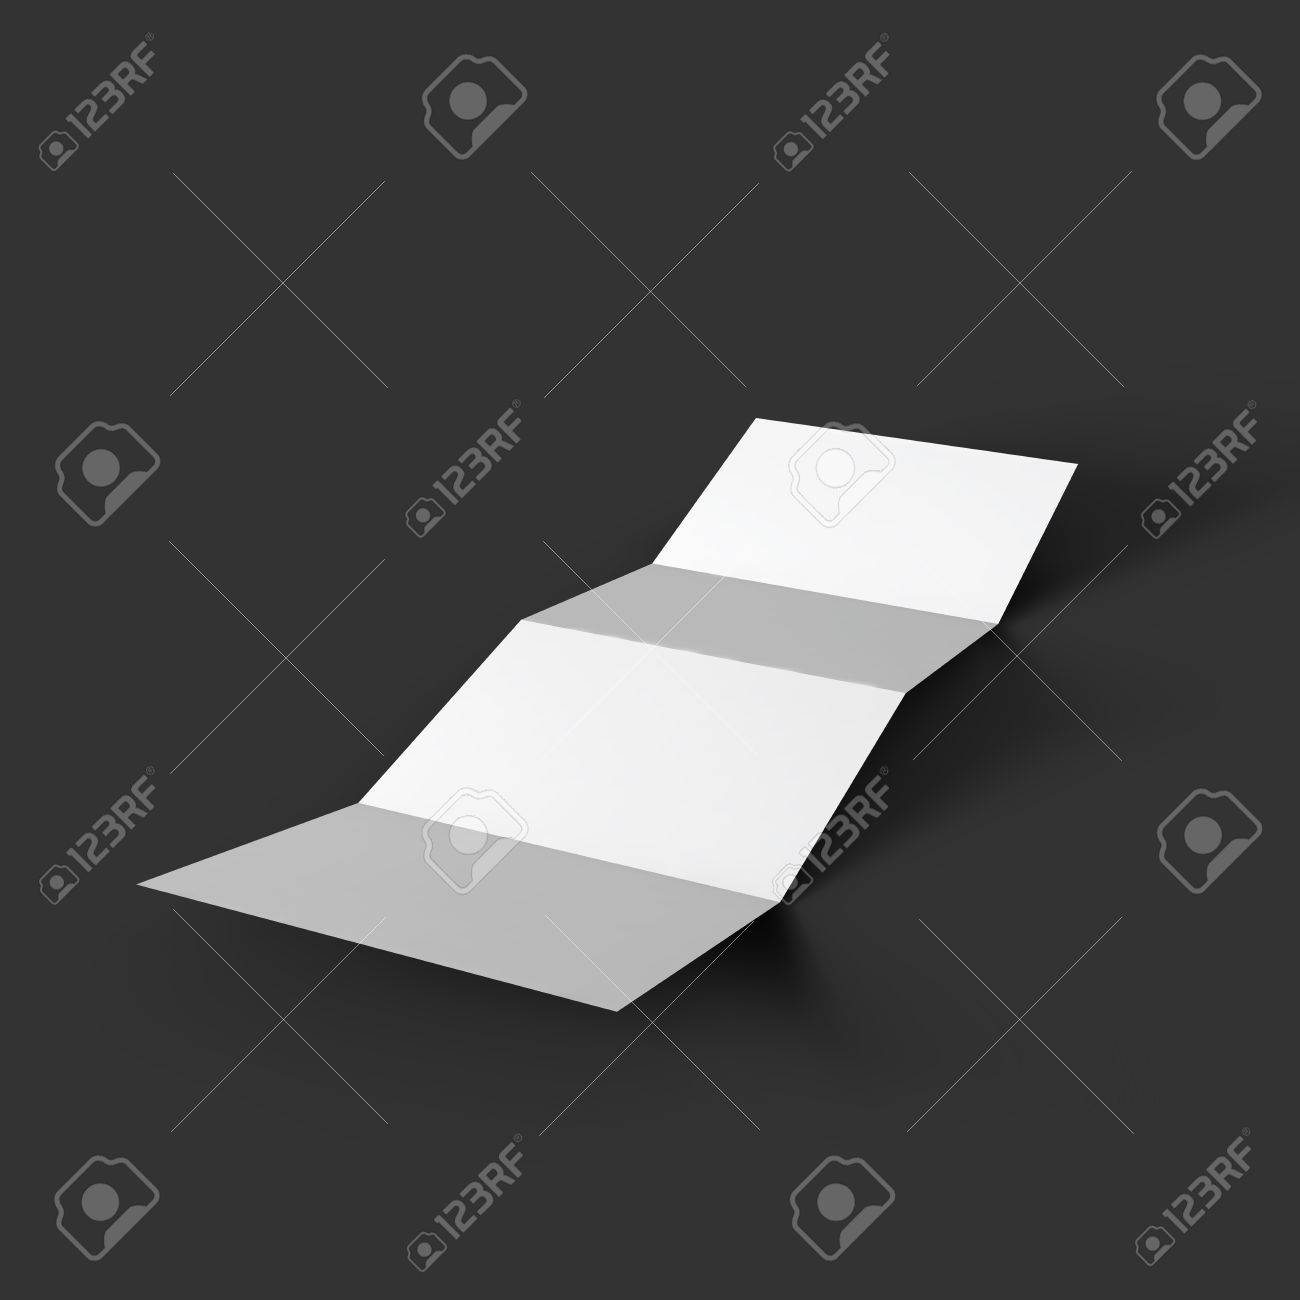 Zigzag White 4 Page Brochure Mockup Template  Royalty Free Cliparts     Vector   Zigzag white 4 page brochure mockup template